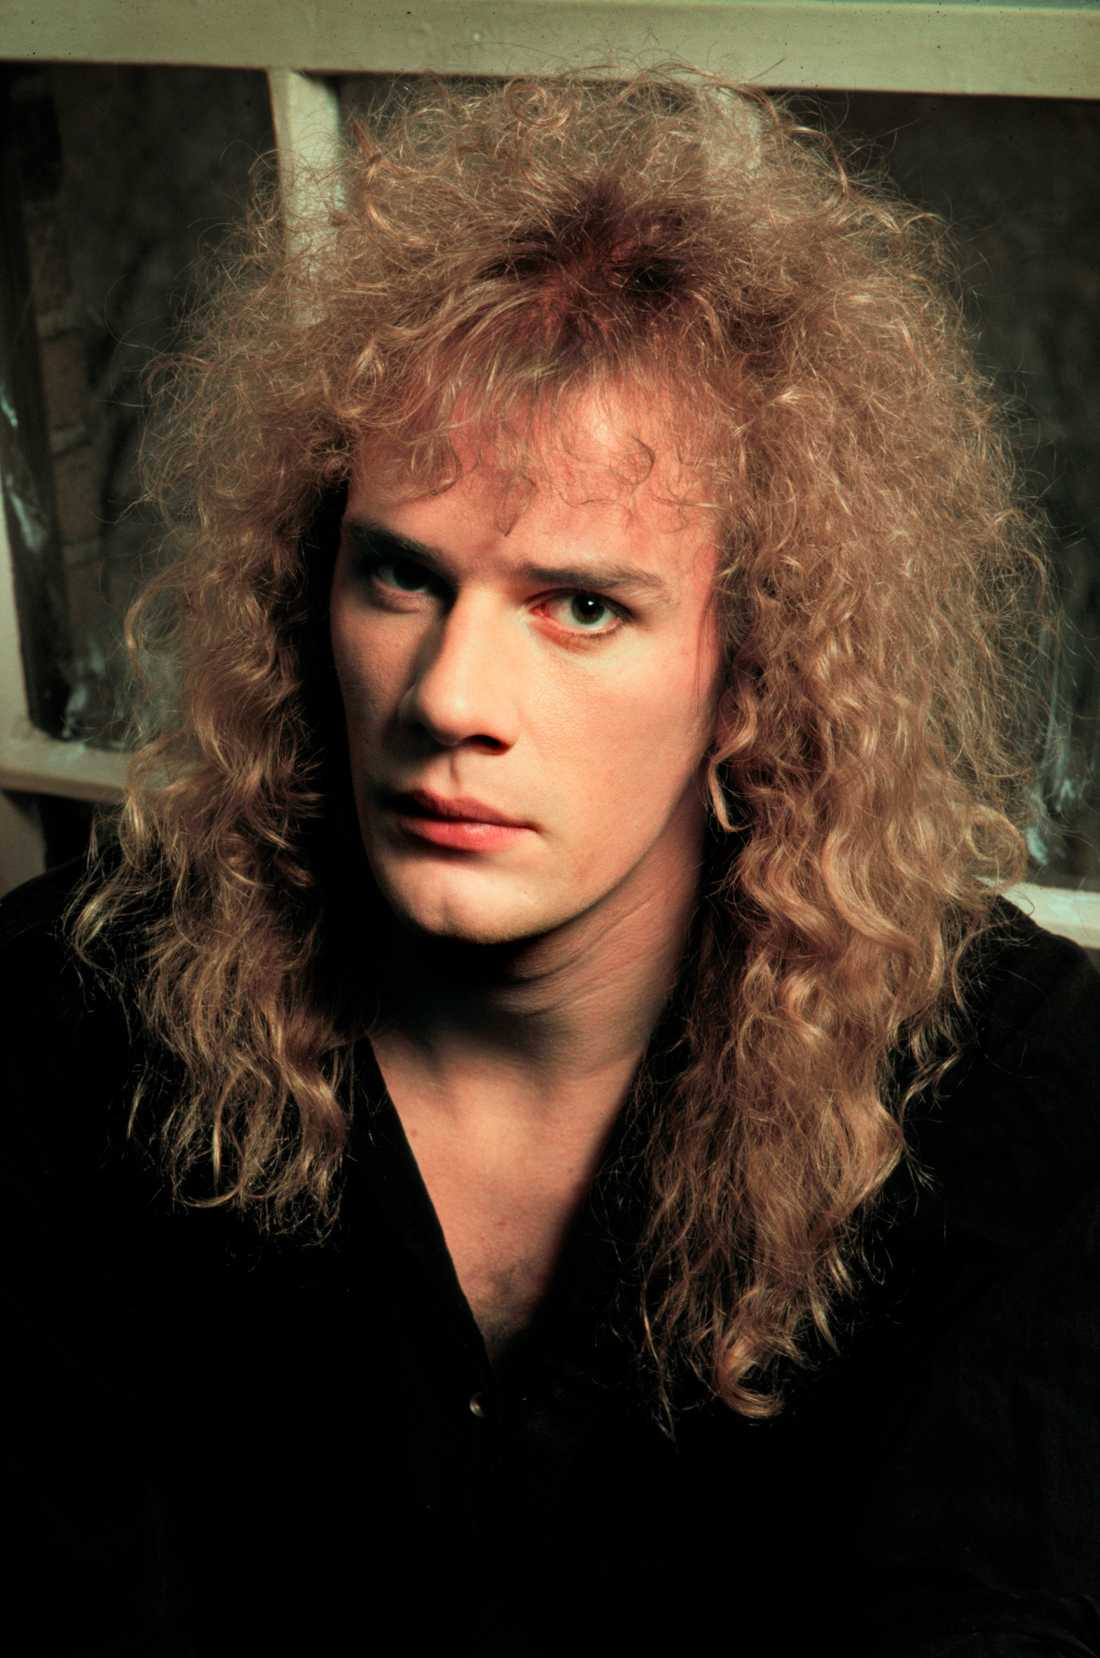 Anders unde Yngwie-perioden.